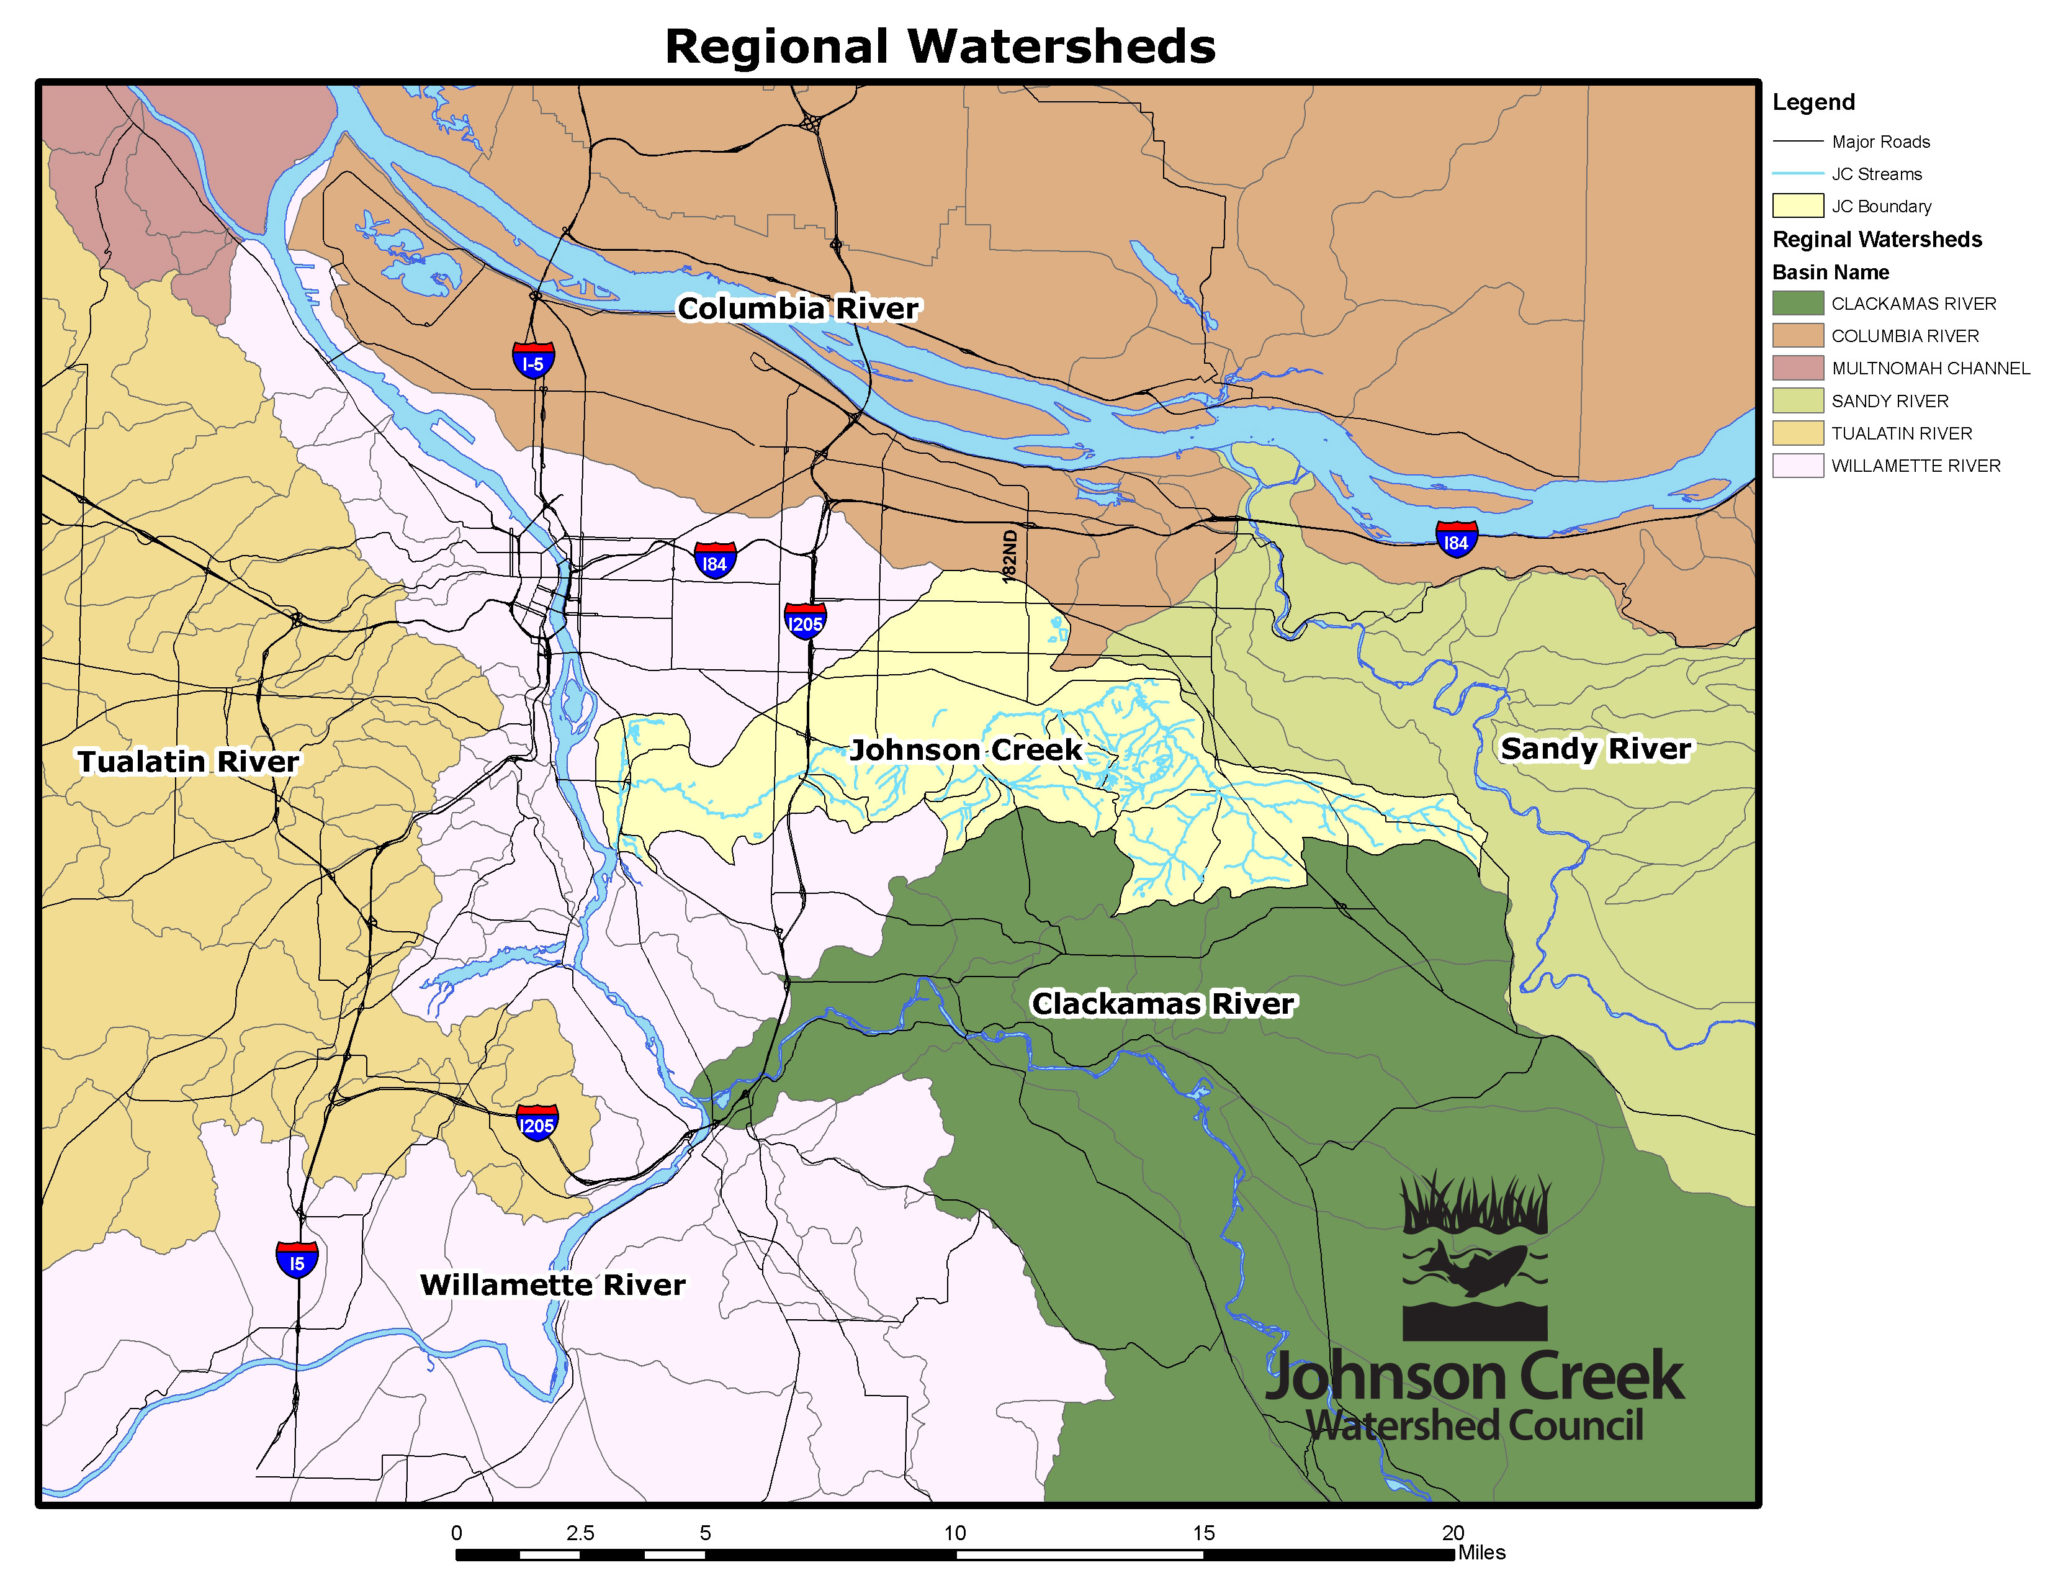 Watershed Maps – Johnson Creek Watershed Council on map projection, geographic feature, global map, history of cartography, satellite imagery, cartography of the united states, early world maps, geographic coordinate system,